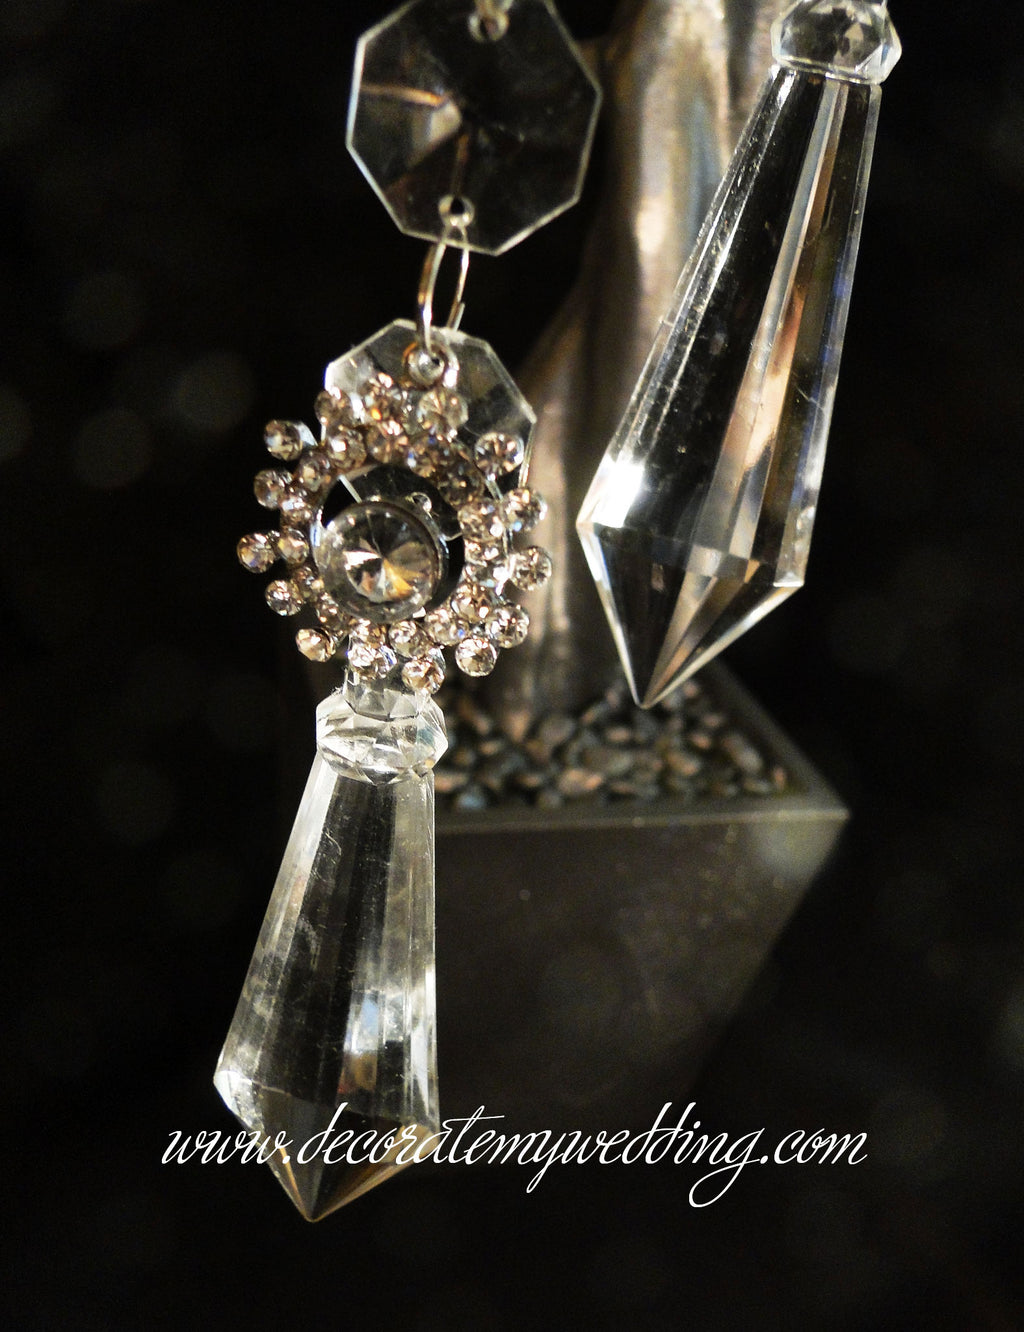 The diamond pendant strands has large diamond pendant attached to a string of octagon beads and a rhinestone embellishment.